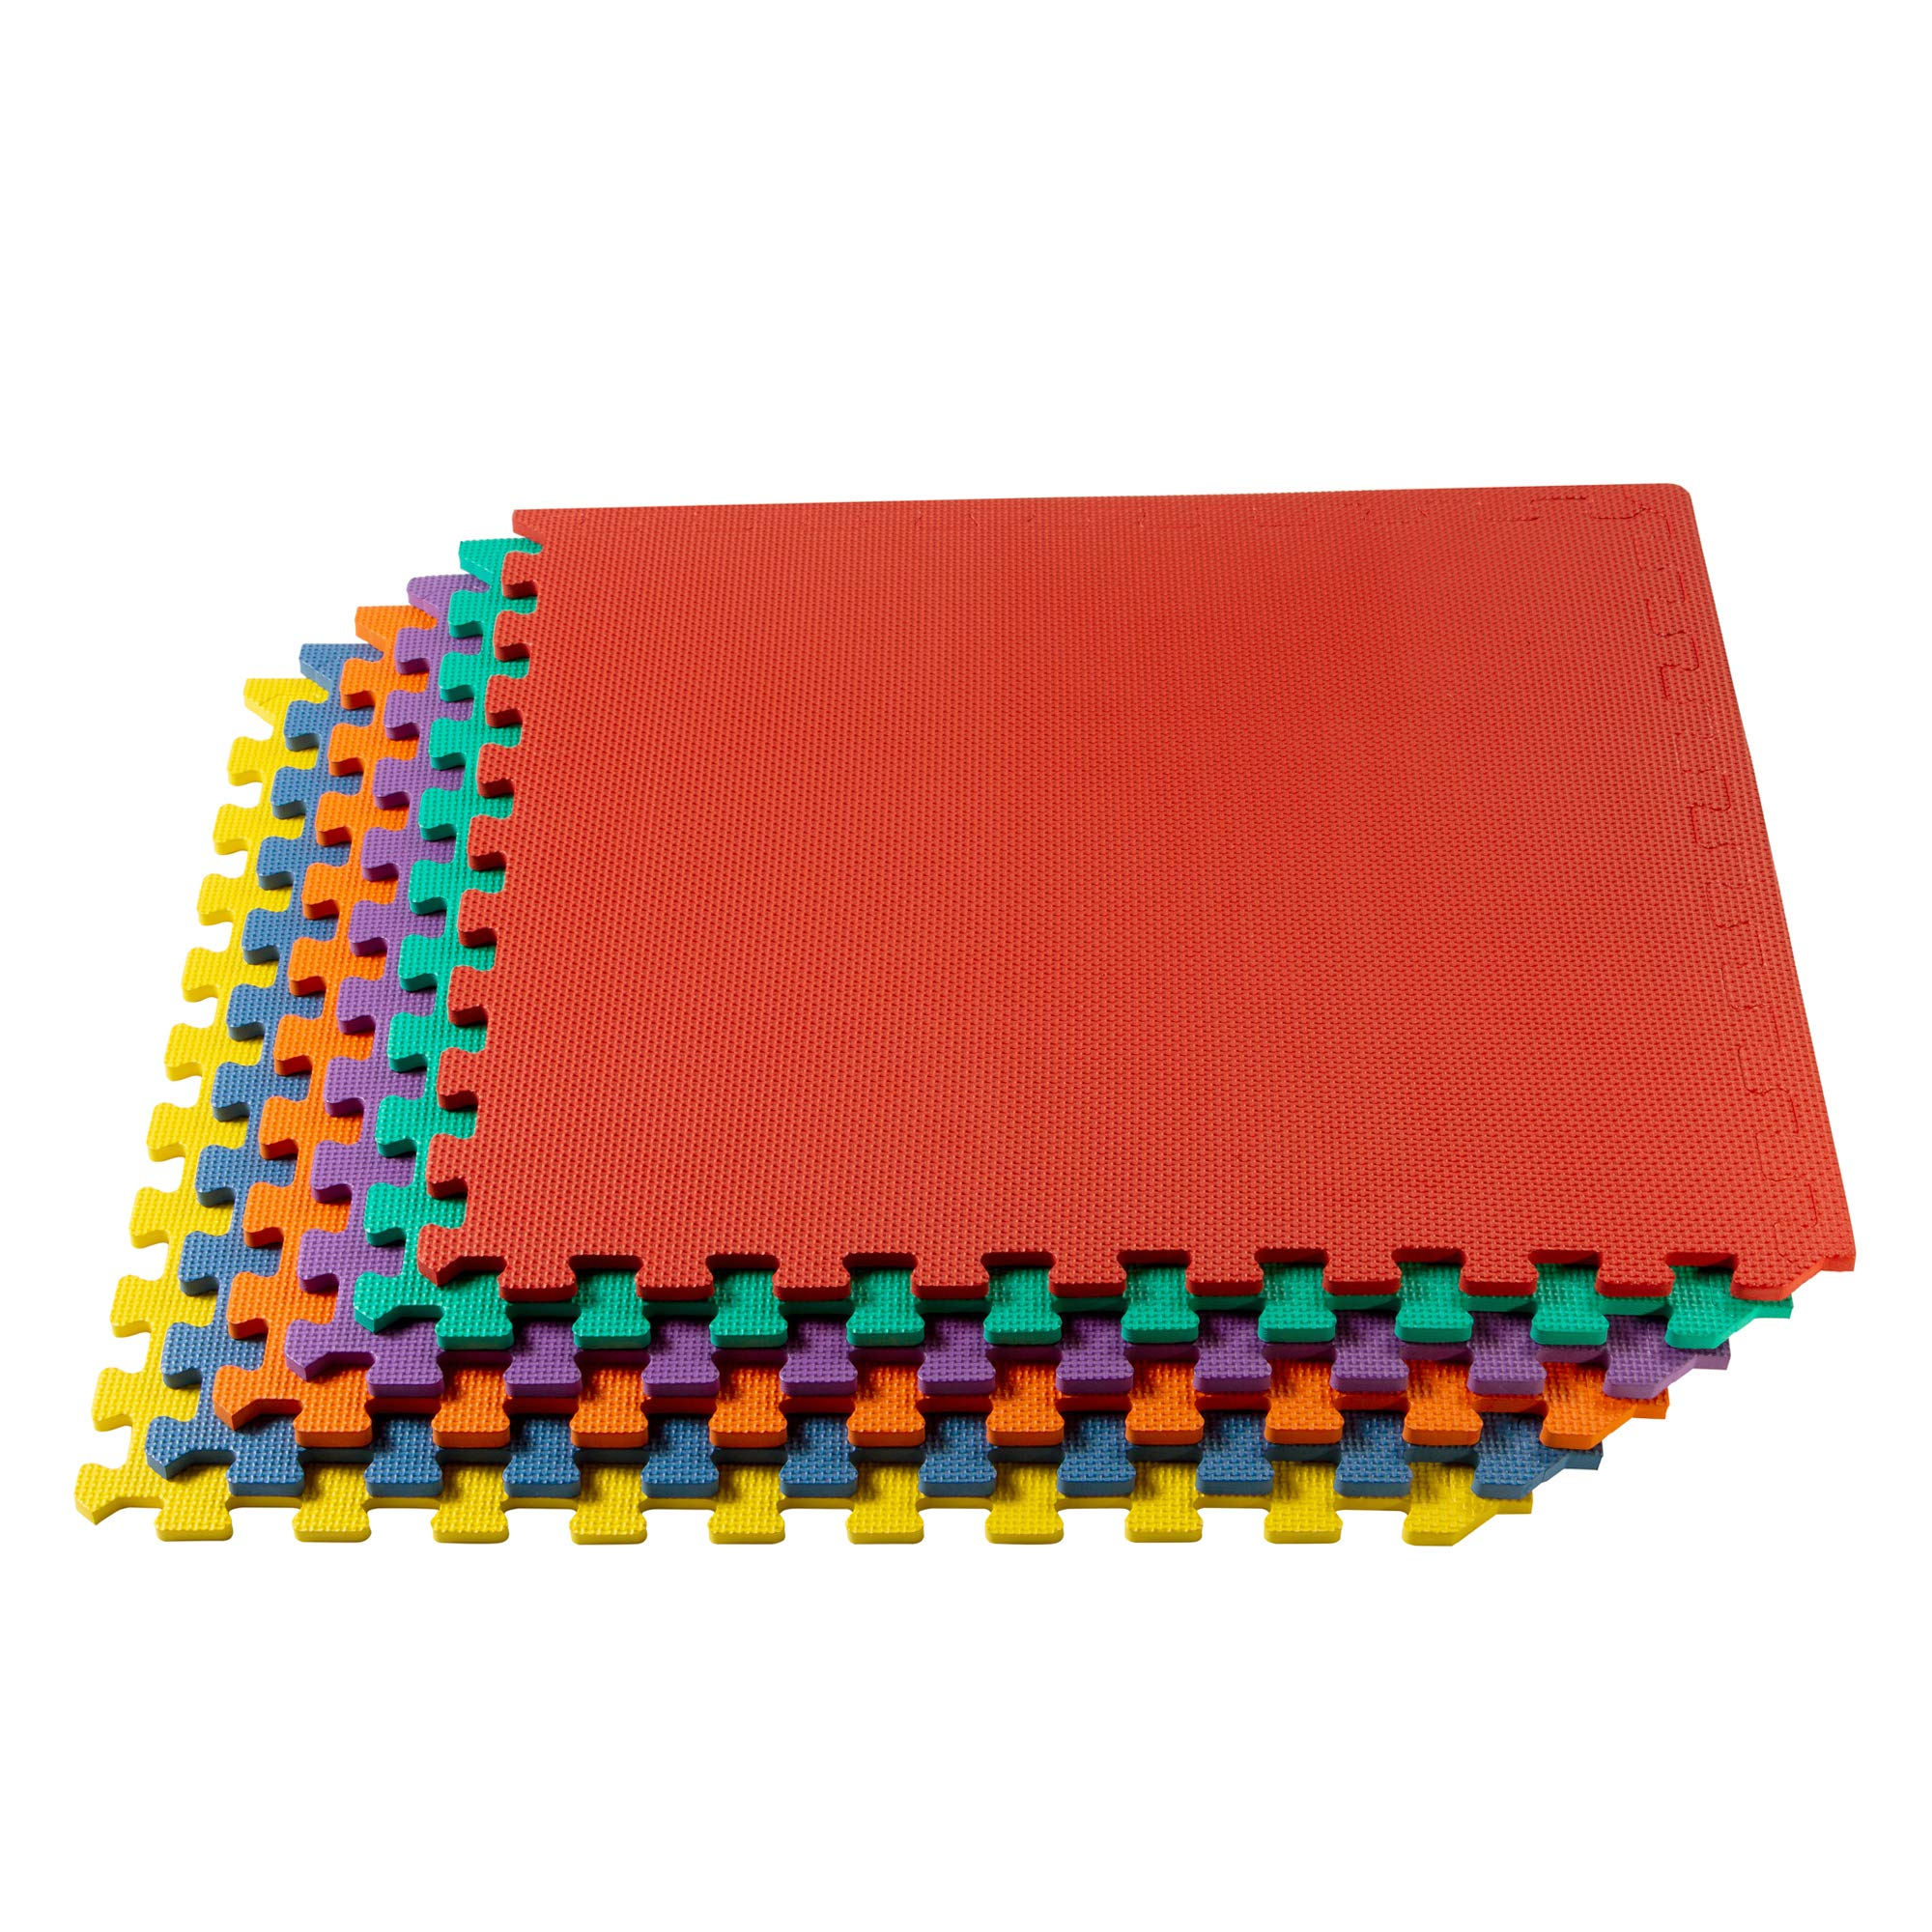 We Sell Mats Multipurpose Exercise Floor Mat with EVA Foam, Interlocking Tiles, Anti-Fatigue, for Home or Gym, 120 Square Feet (30 Tiles), 24 x 24 x 3/8 Inches, Multi-Color by We Sell Mats